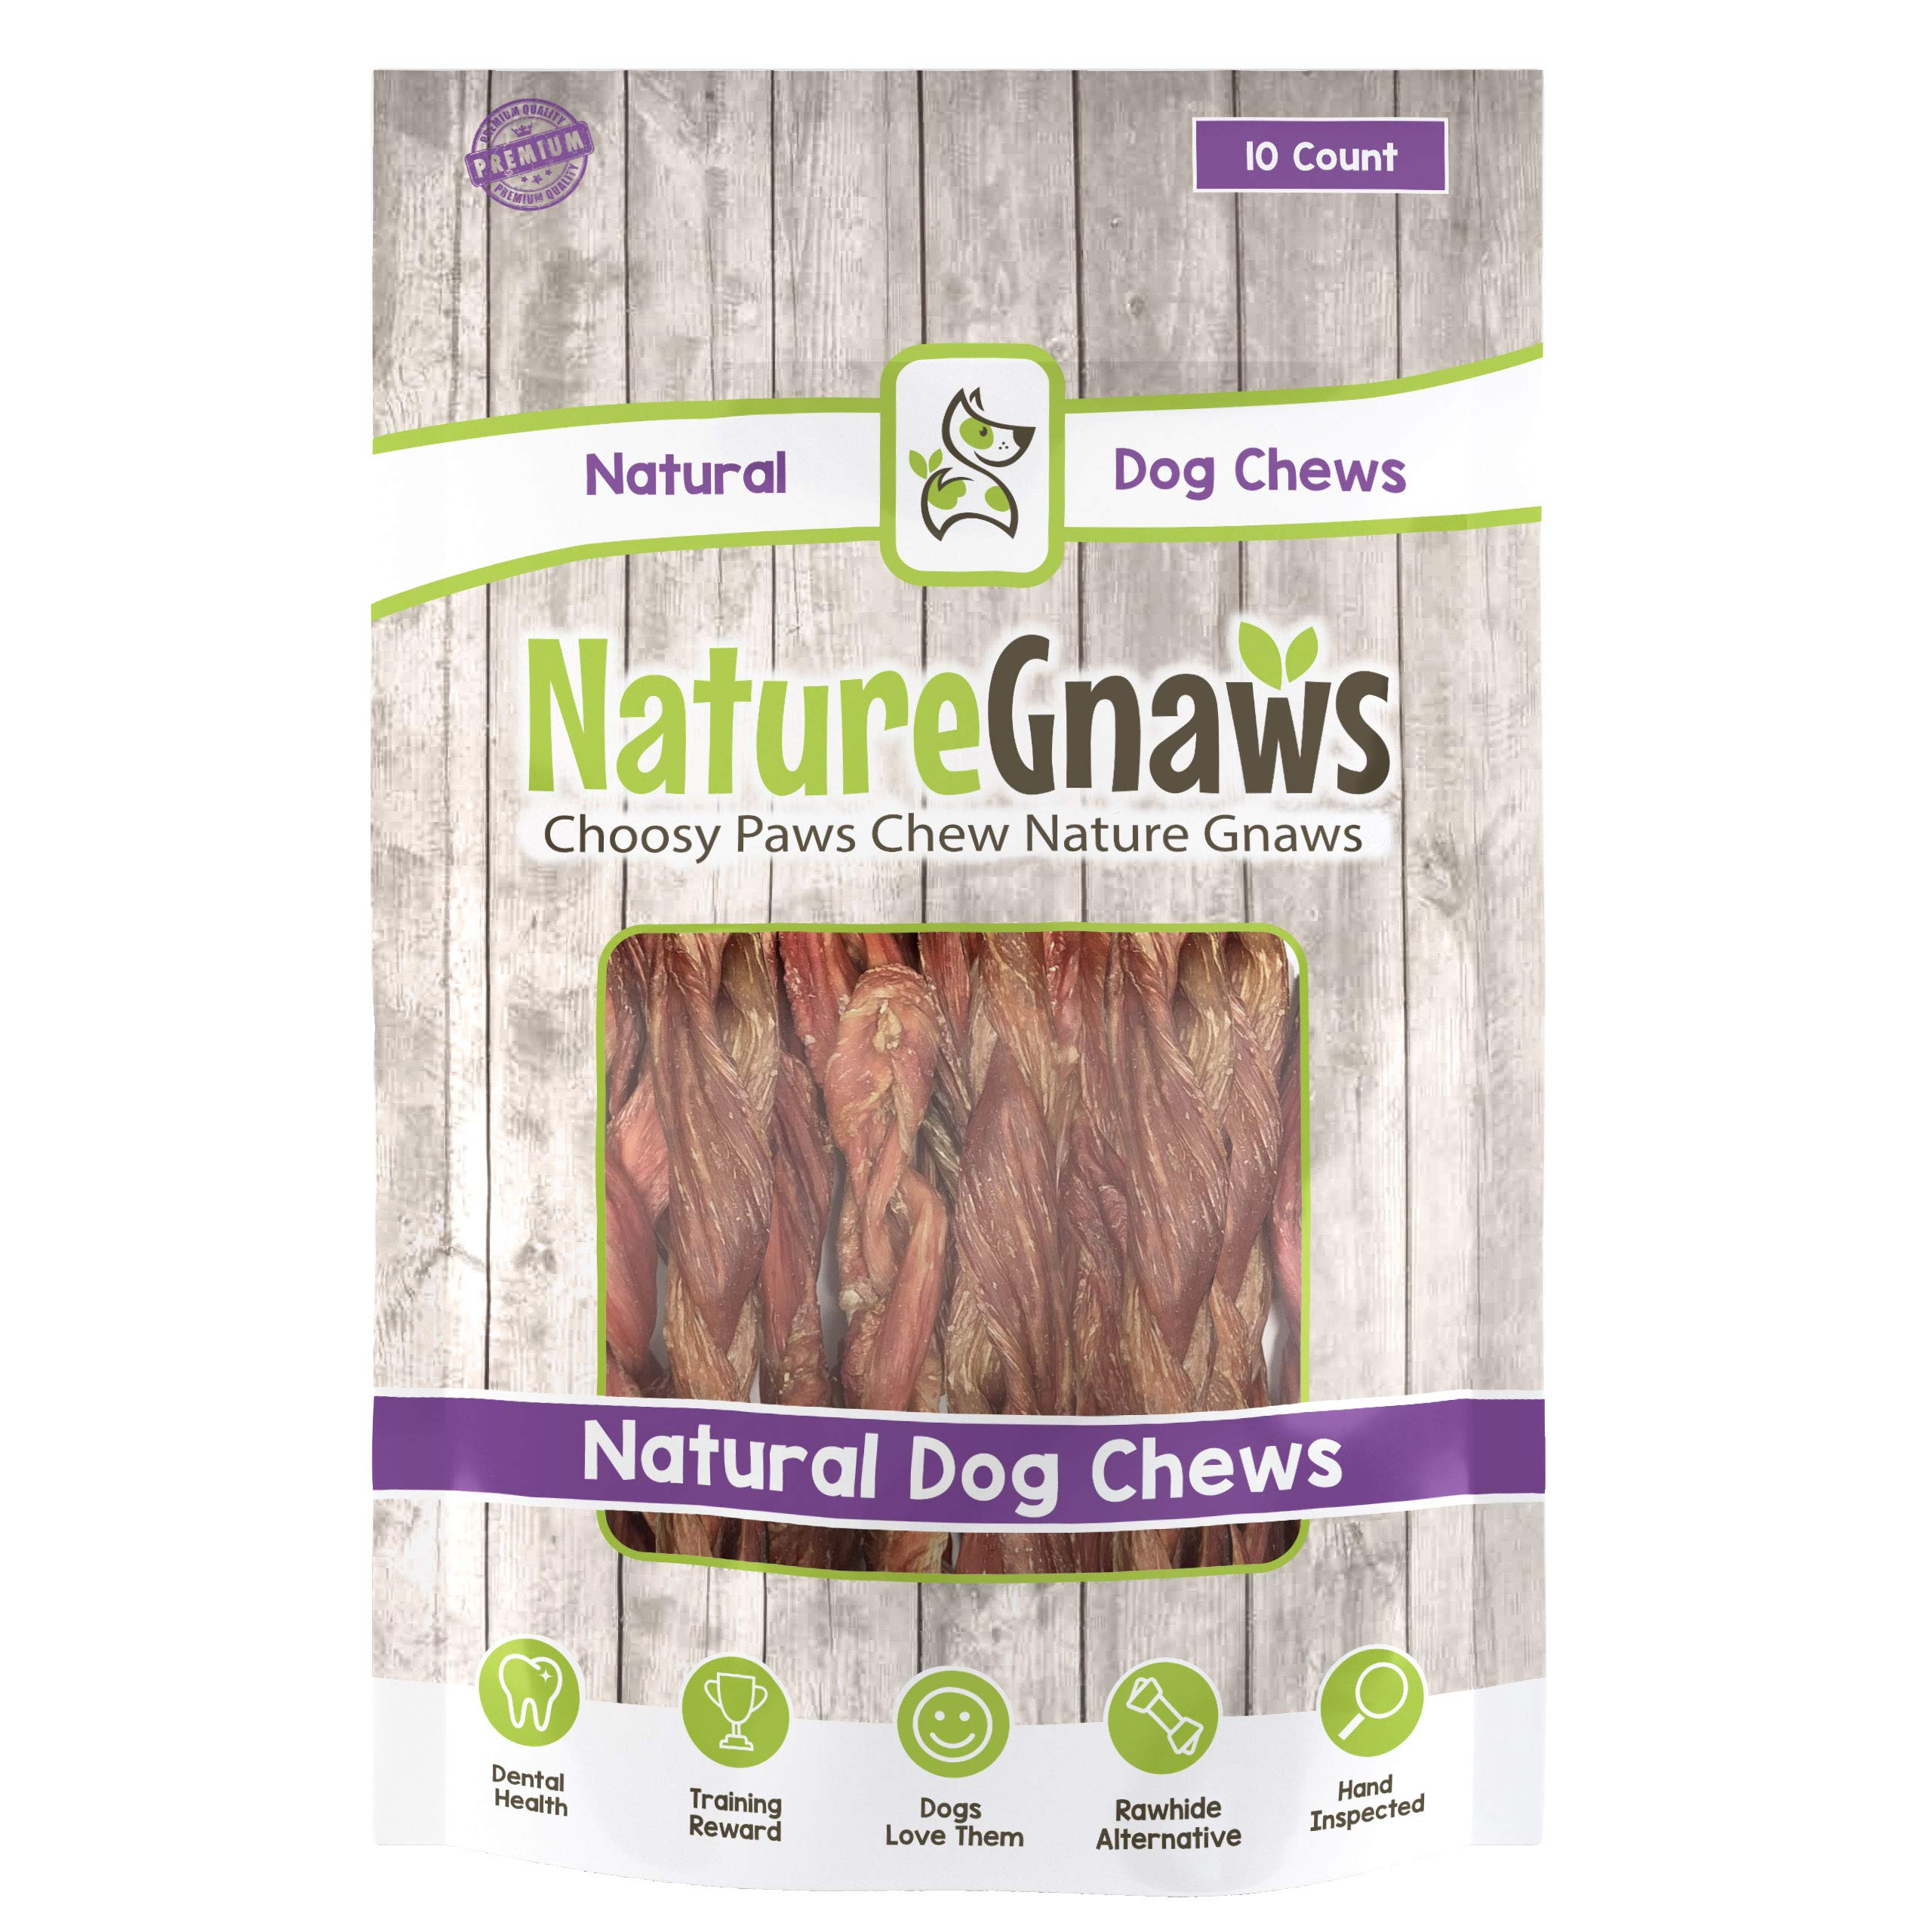 Nature Gnaws Braided Bladder Sticks 9-10'' (10 Count) - 100% Natural Beef Dog Chews by Nature Gnaws